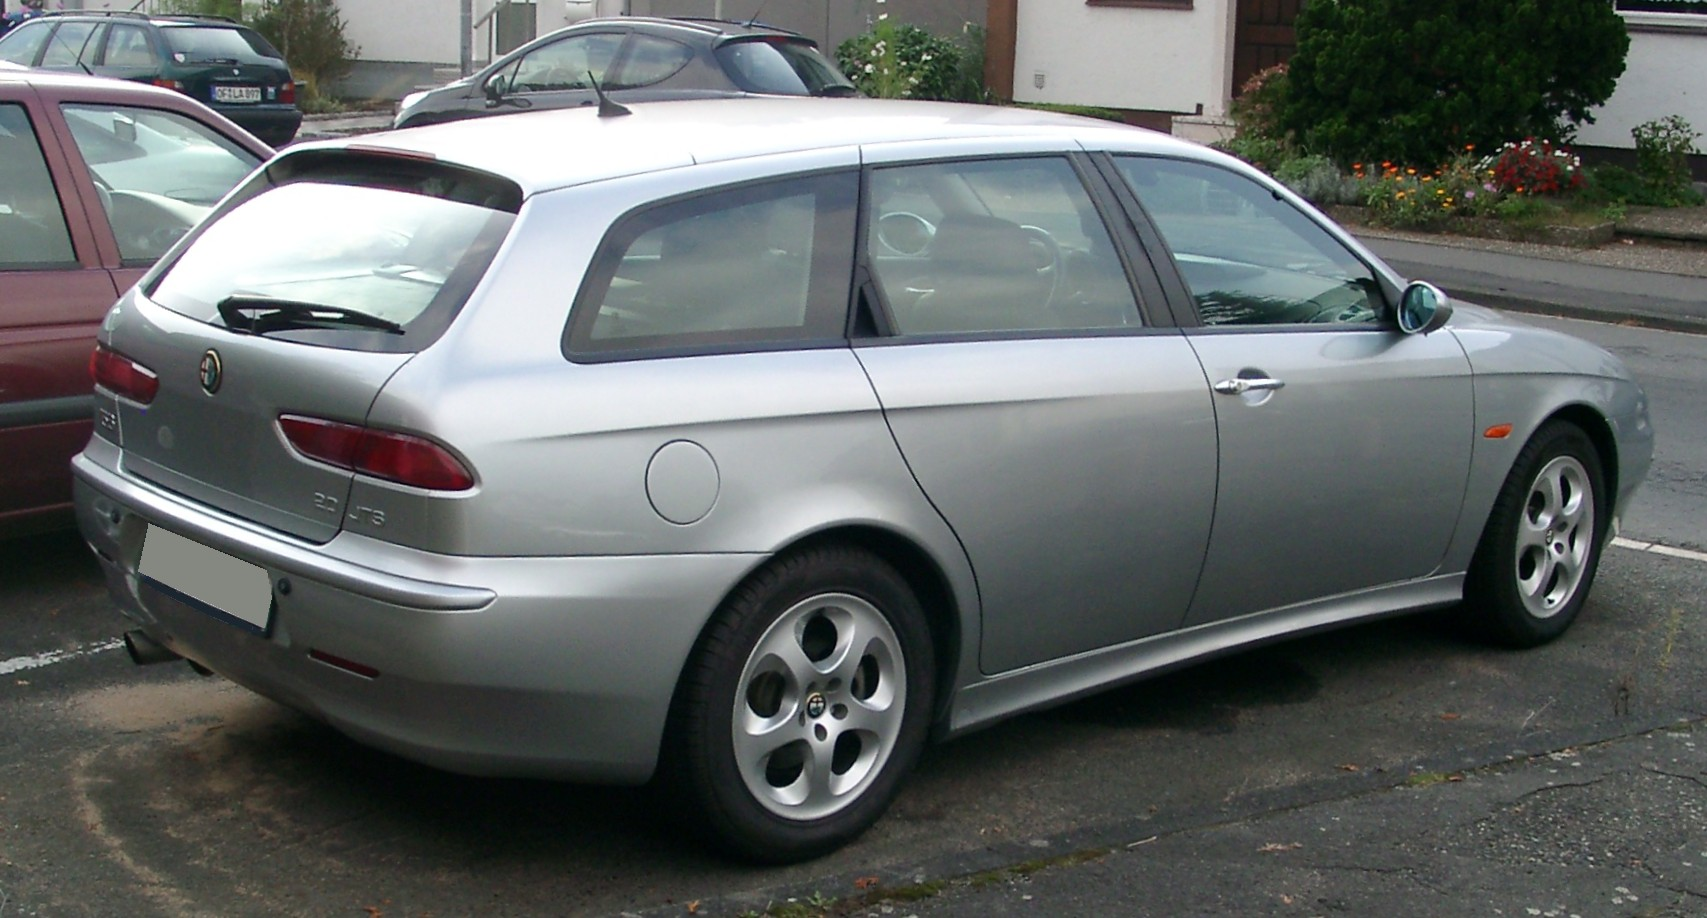 file alfa romeo 156 sportwagon rear wikimedia commons. Black Bedroom Furniture Sets. Home Design Ideas